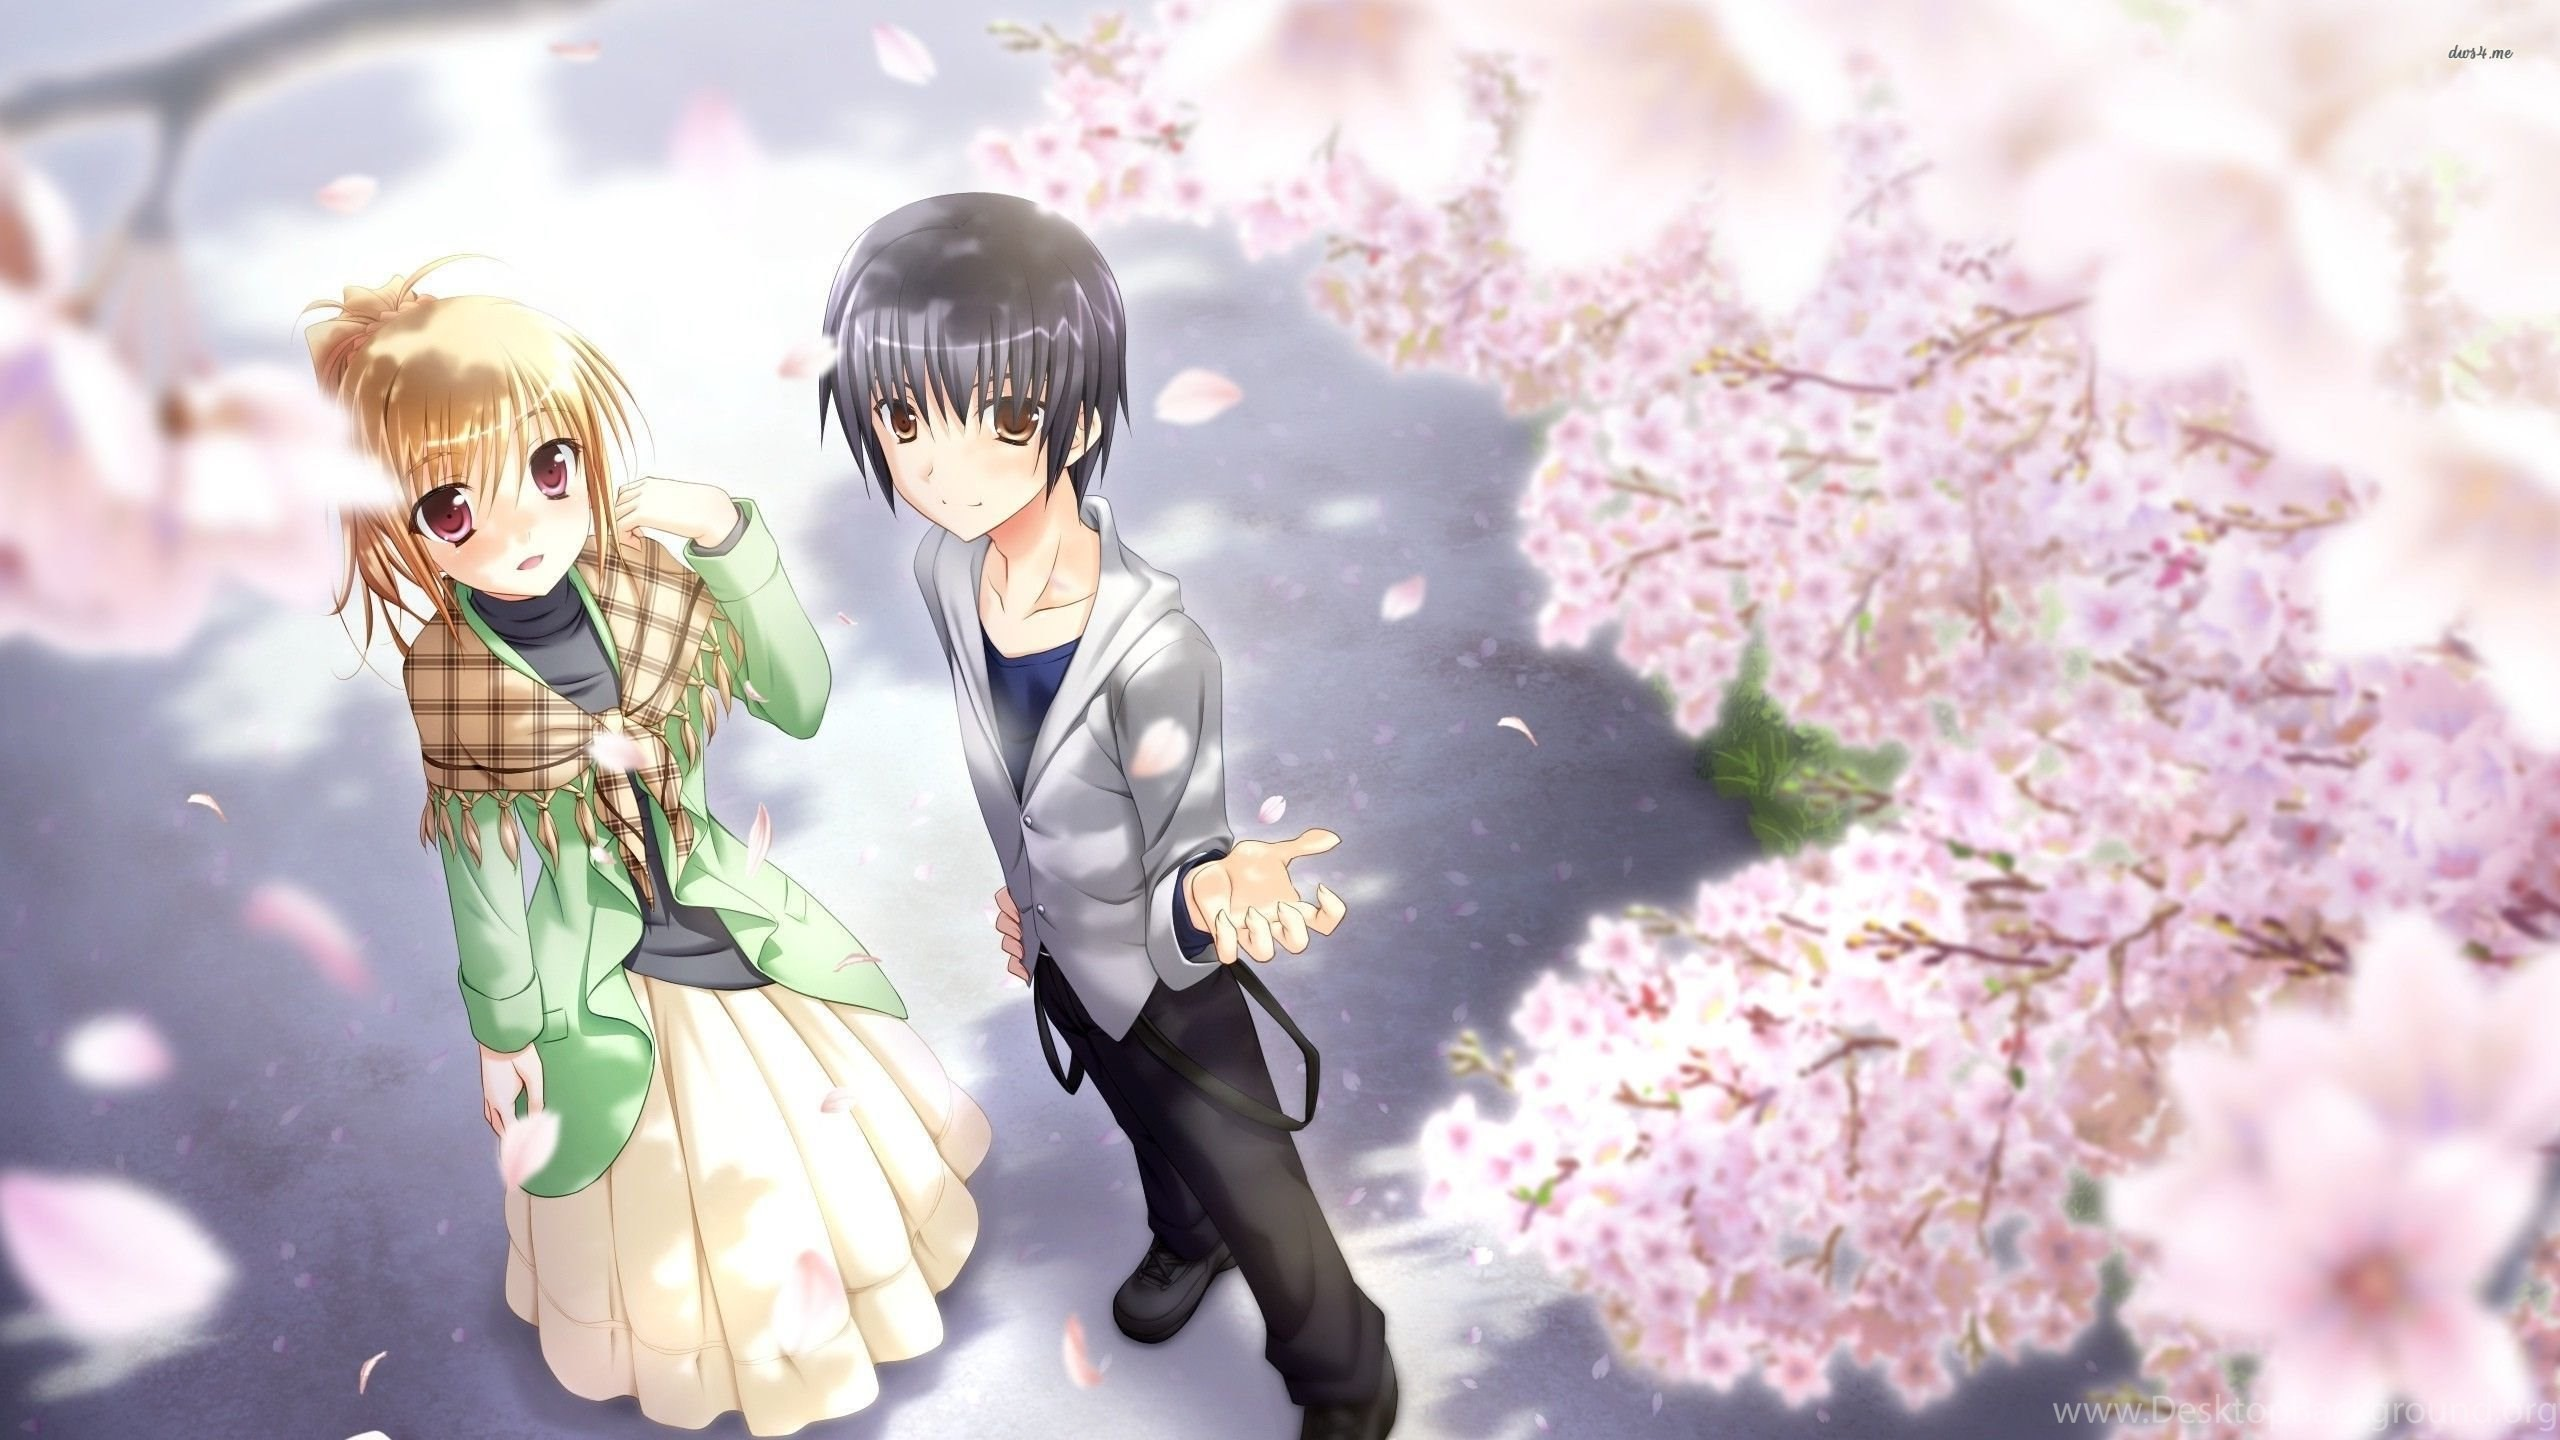 Anime Images Wallpaper Love Couples Couple Hd Wallpaper: Anime Couple Wallpaper (74+ Images